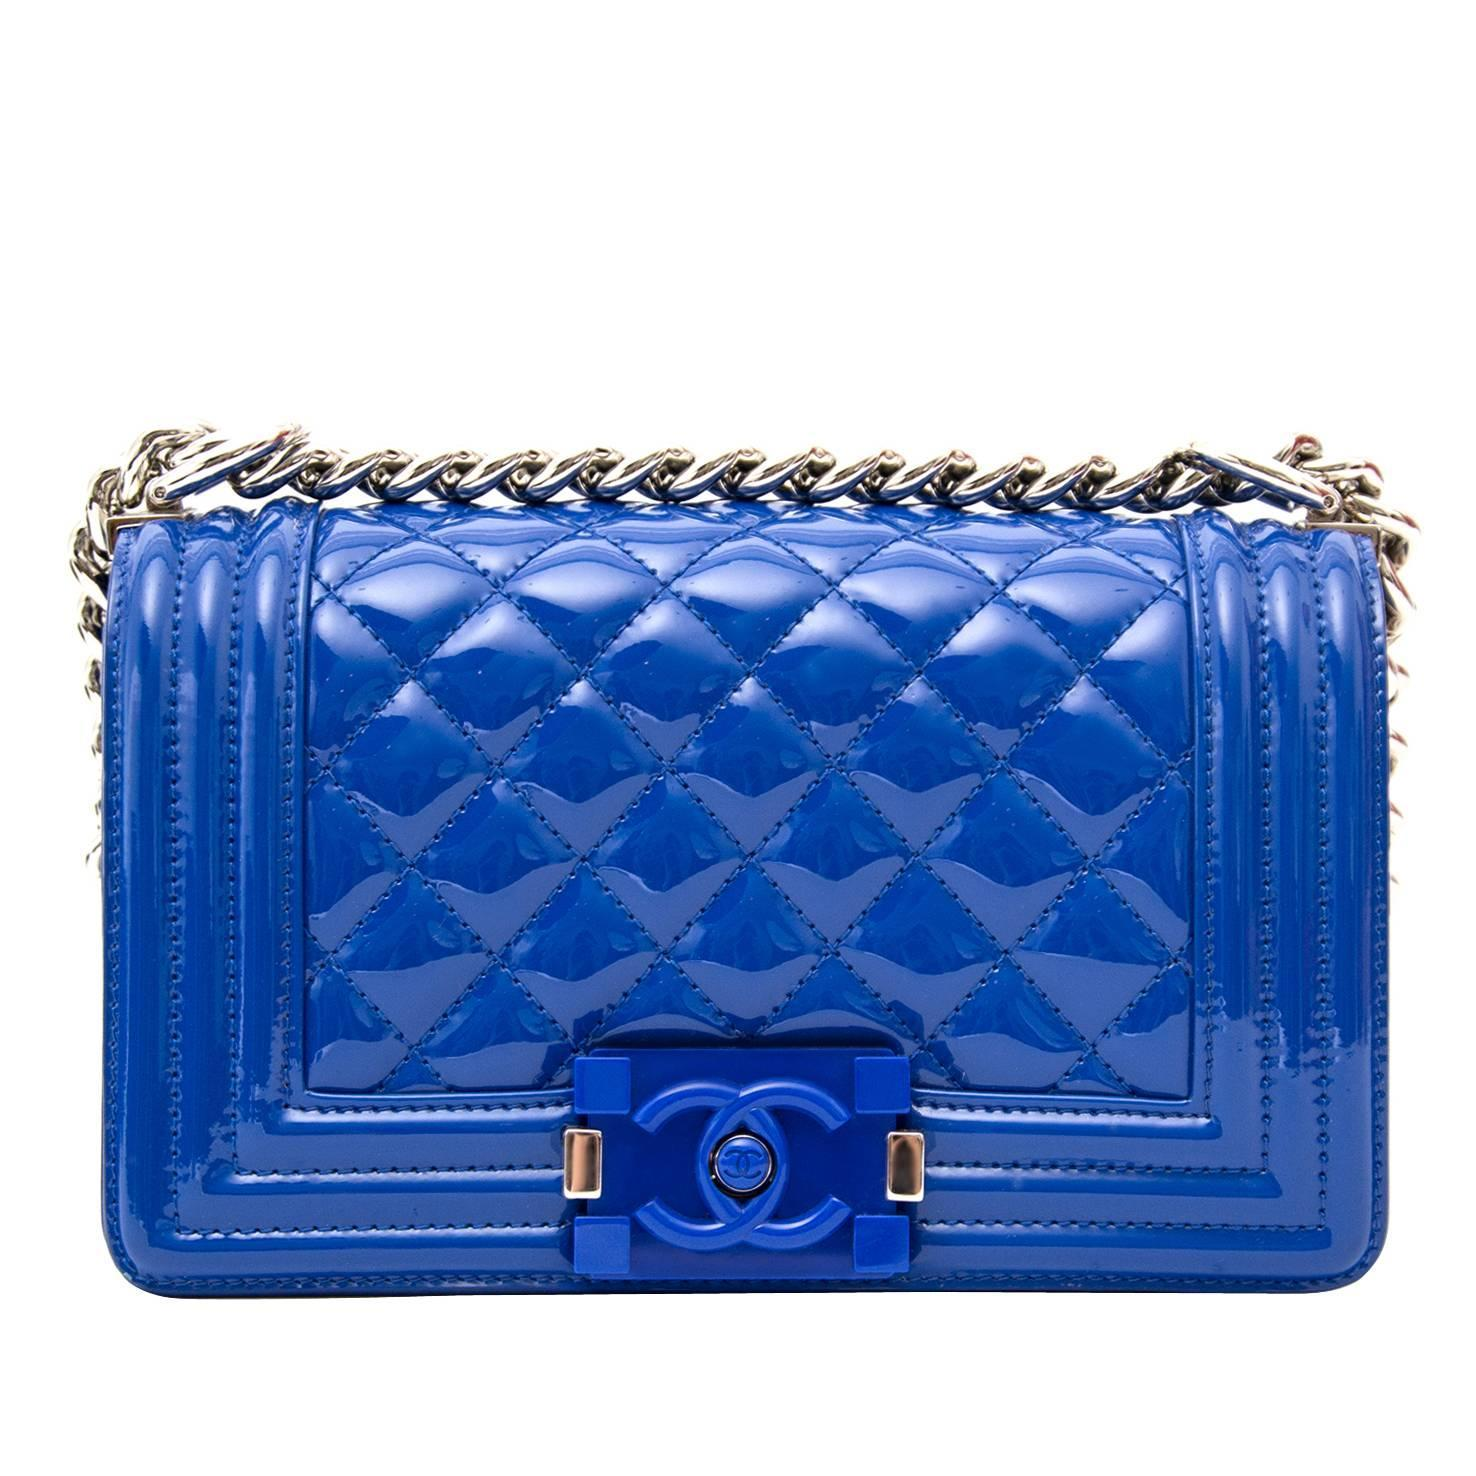 1315bef462c2 Chanel Patent Petrol Blue Boy Bag with Plexiglass CC Boy Clasp at 1stdibs